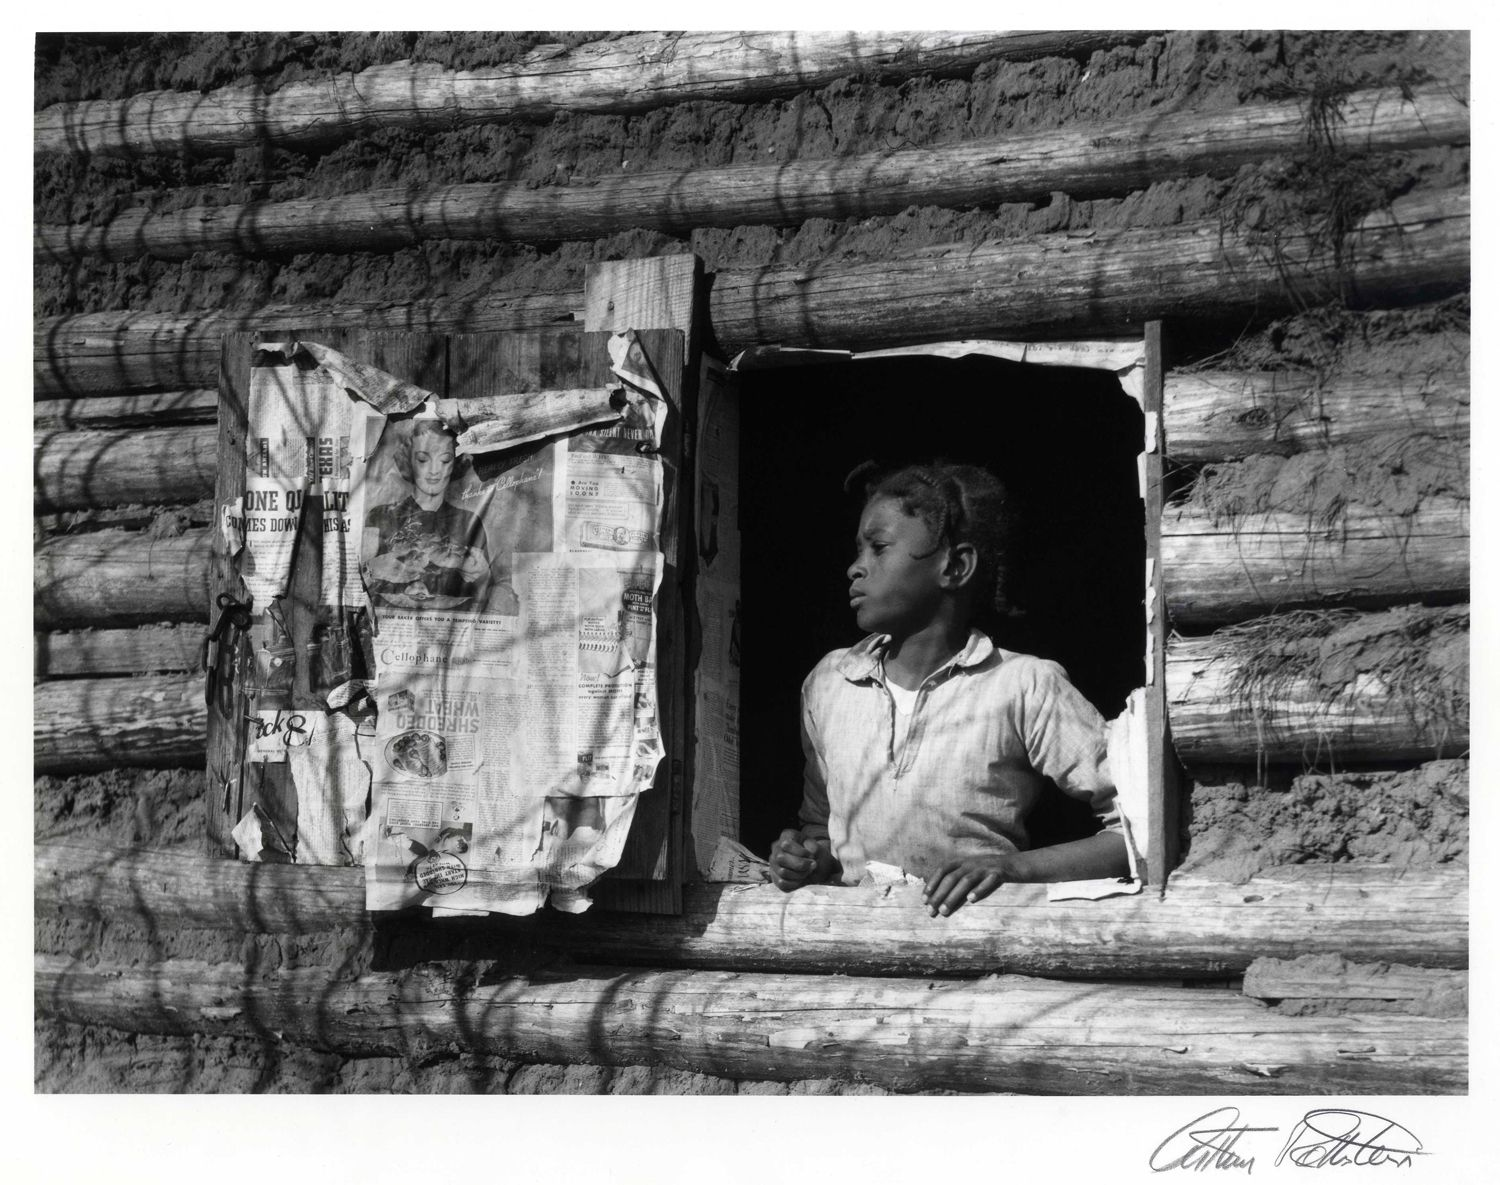 Arthur Rothstein Girl at Gee's Bend, Alabama, 1937